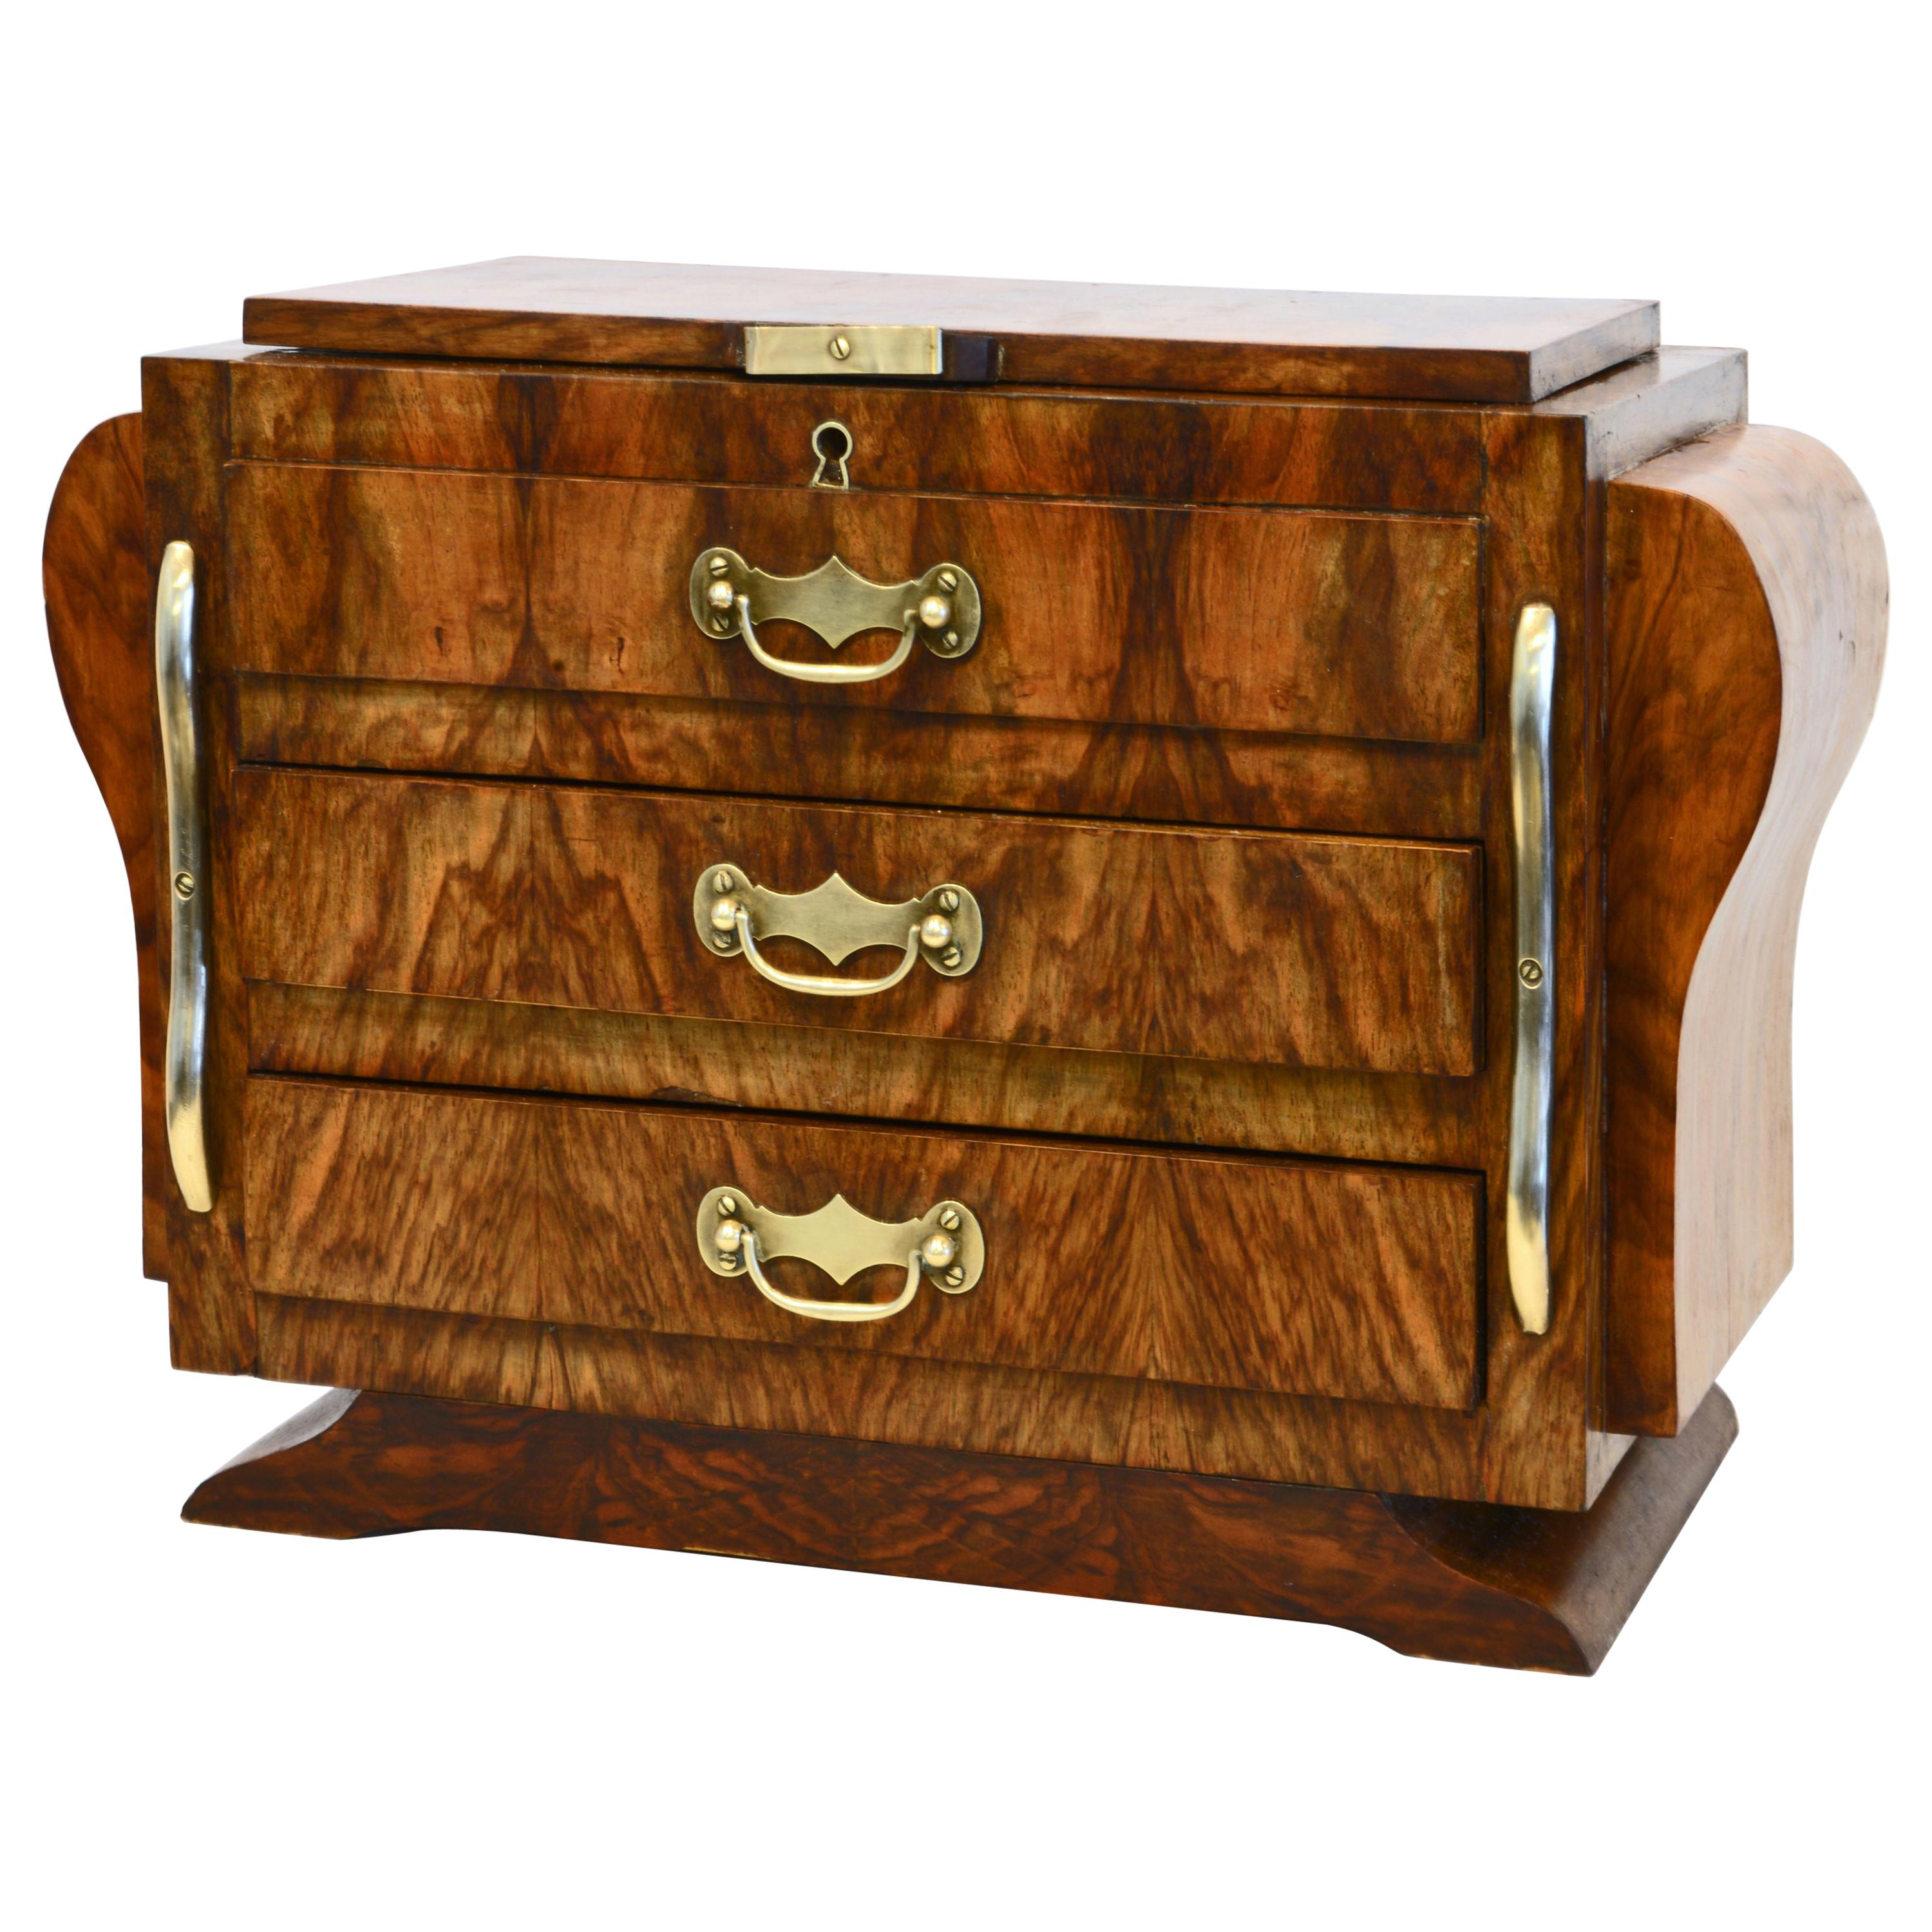 French Art Deco Miniature Figured Olive Wood and Brass Commode or Jewelry Box